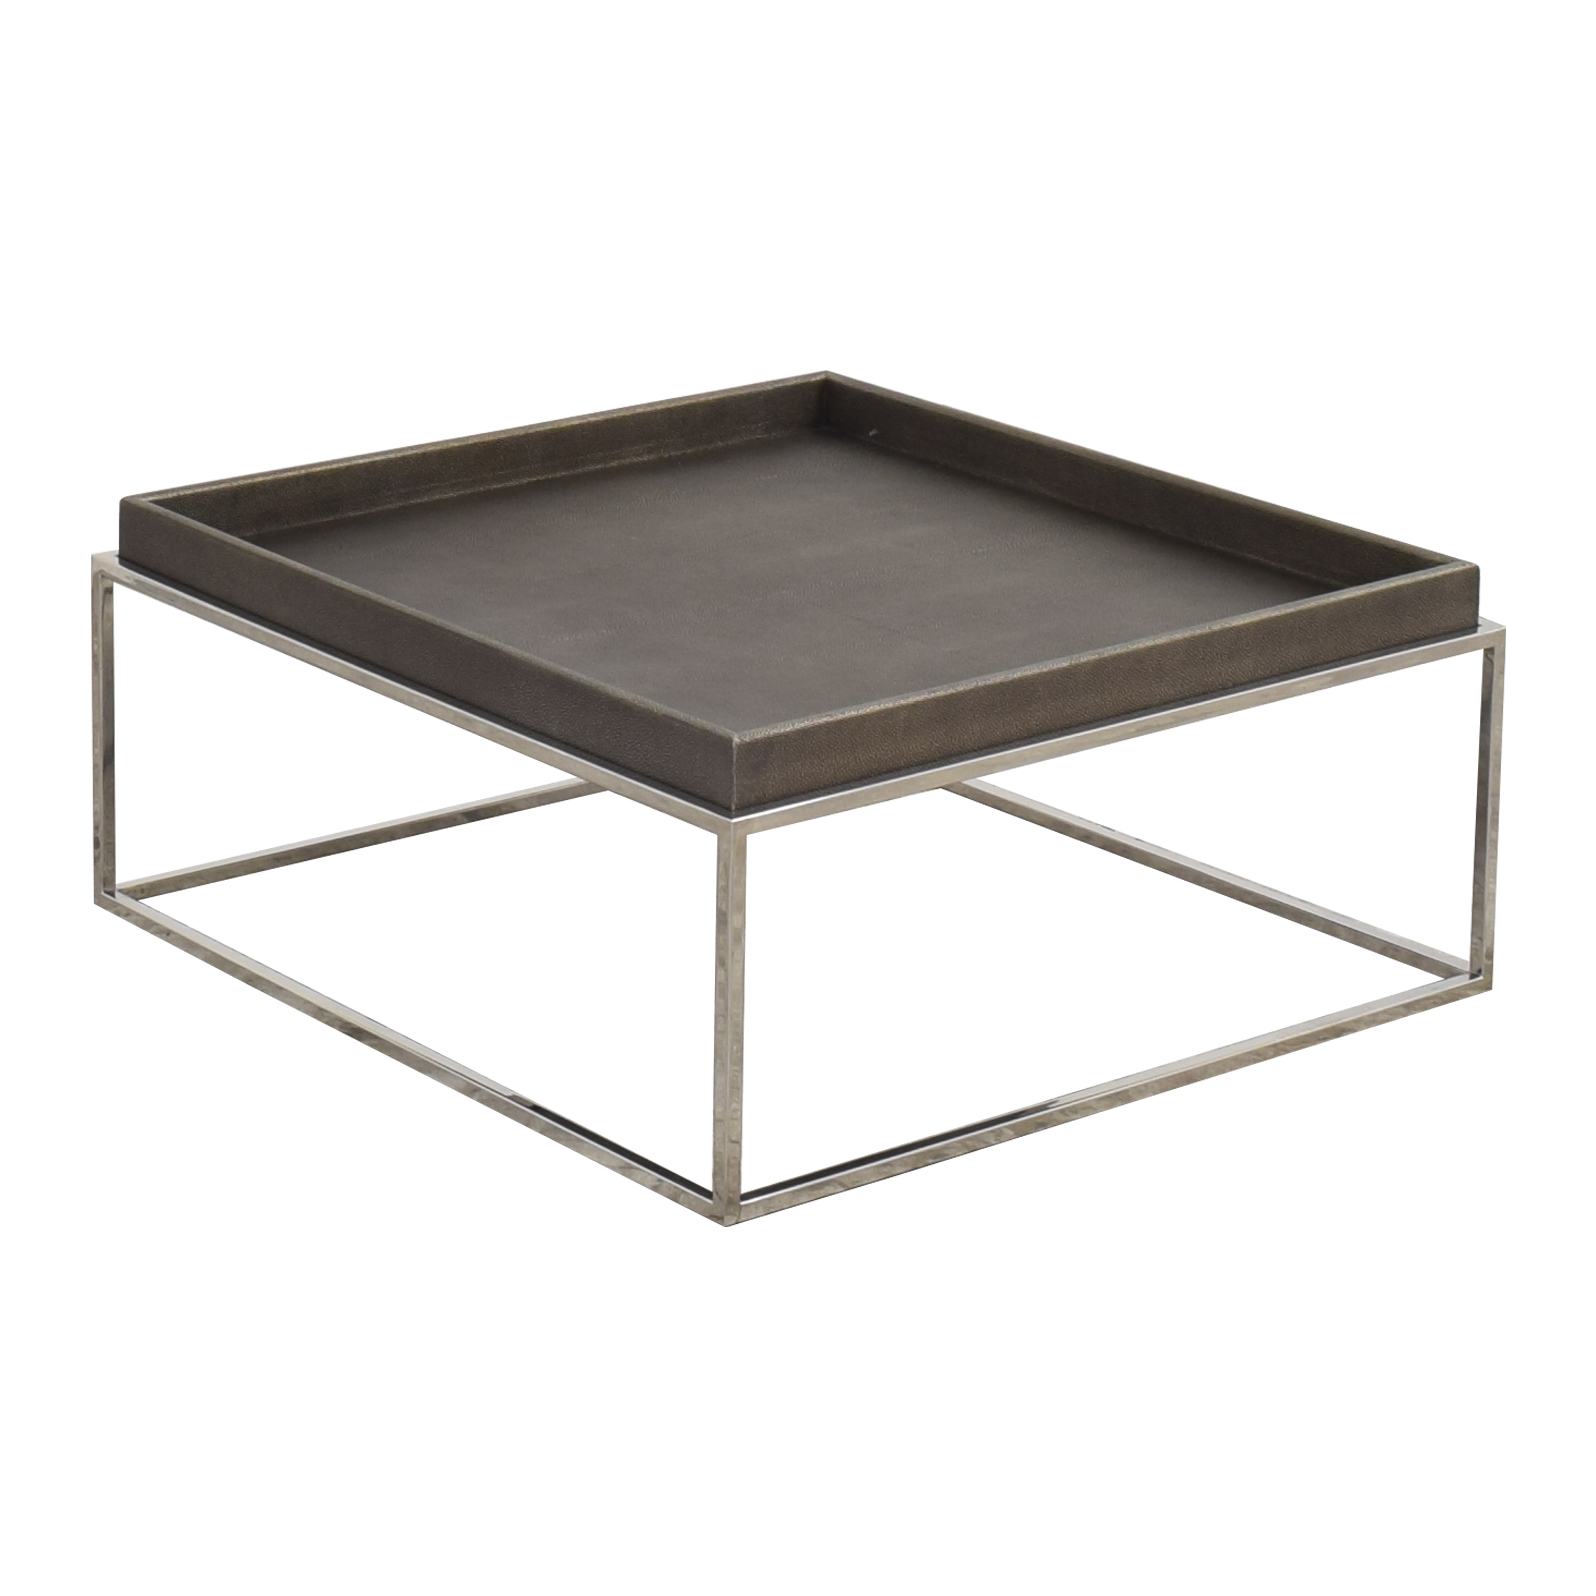 Restoration Hardware Restoration Hardware Hudson Coffee Table on sale